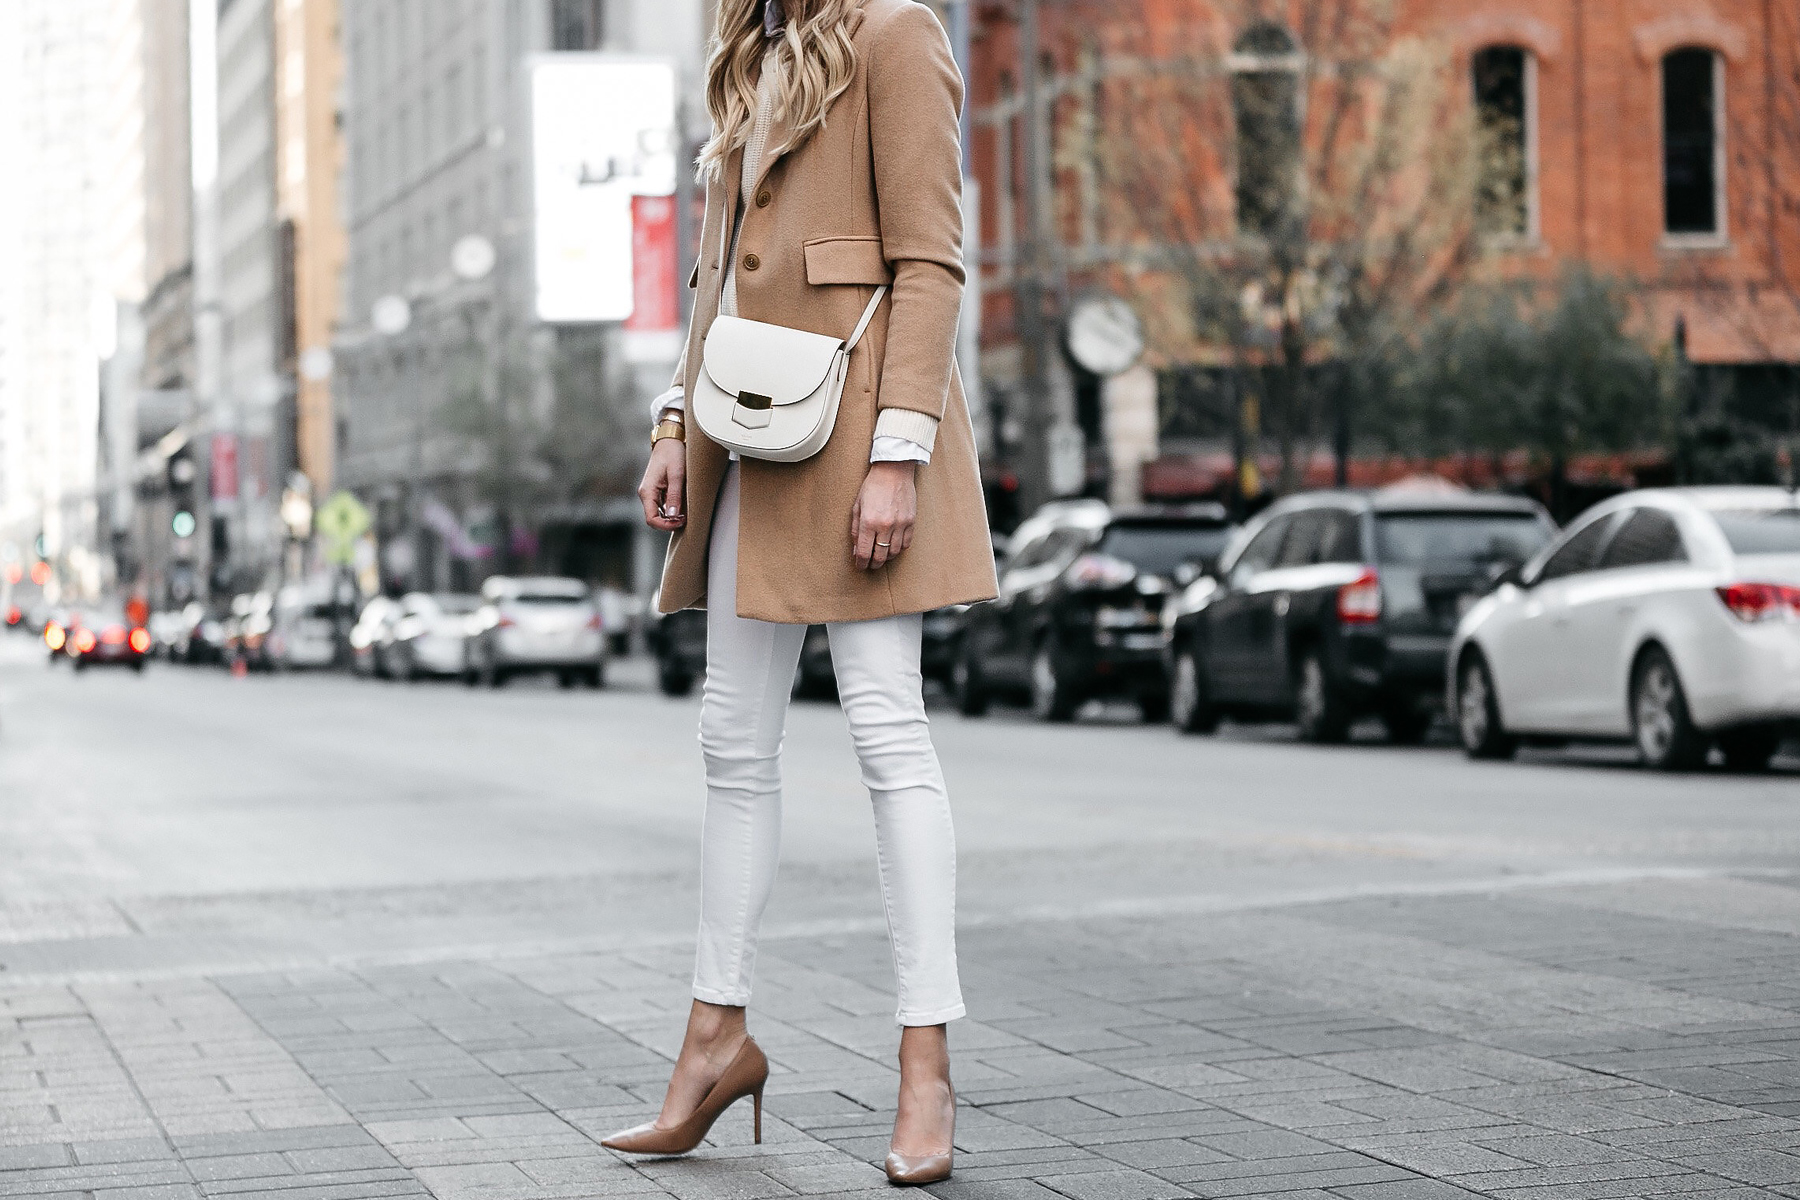 Camel Wool Coat White Skinny Jeans Nude Pumps Celine Trotteur White Handbag Fashion Jackson Dallas Blogger Fashion Blogger Street Style